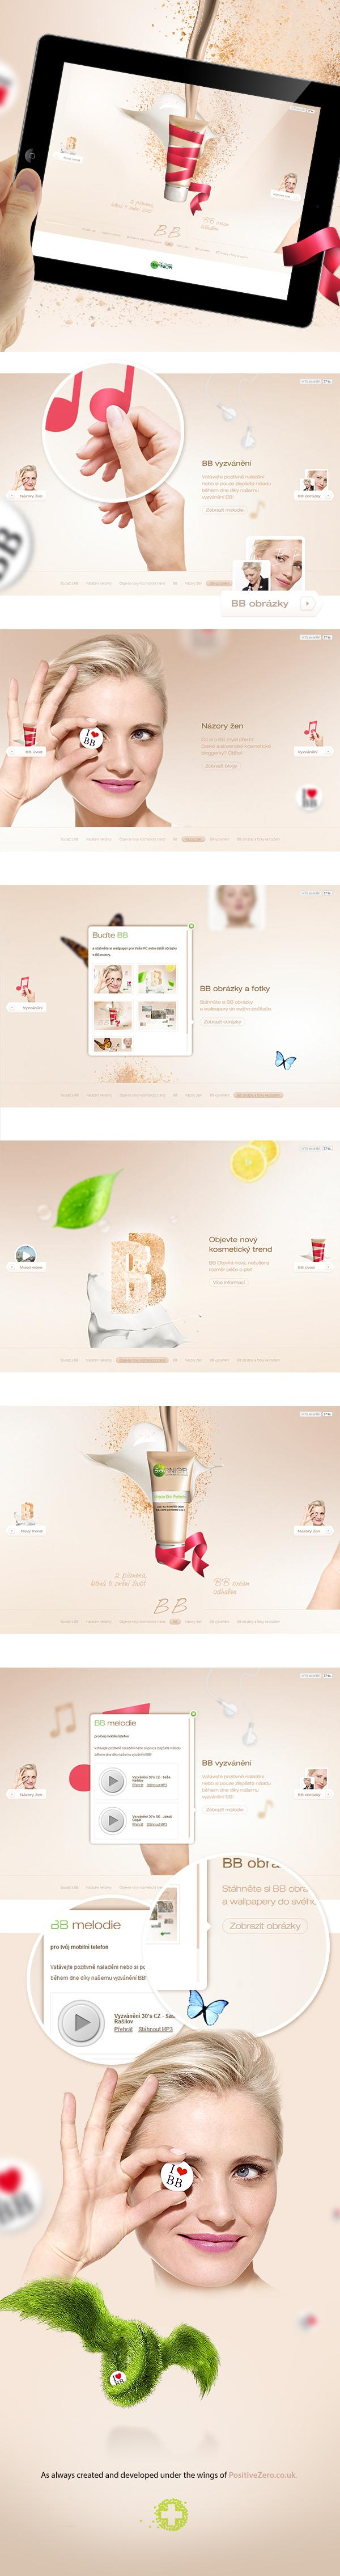 Creative Web Design Inspirations - 2